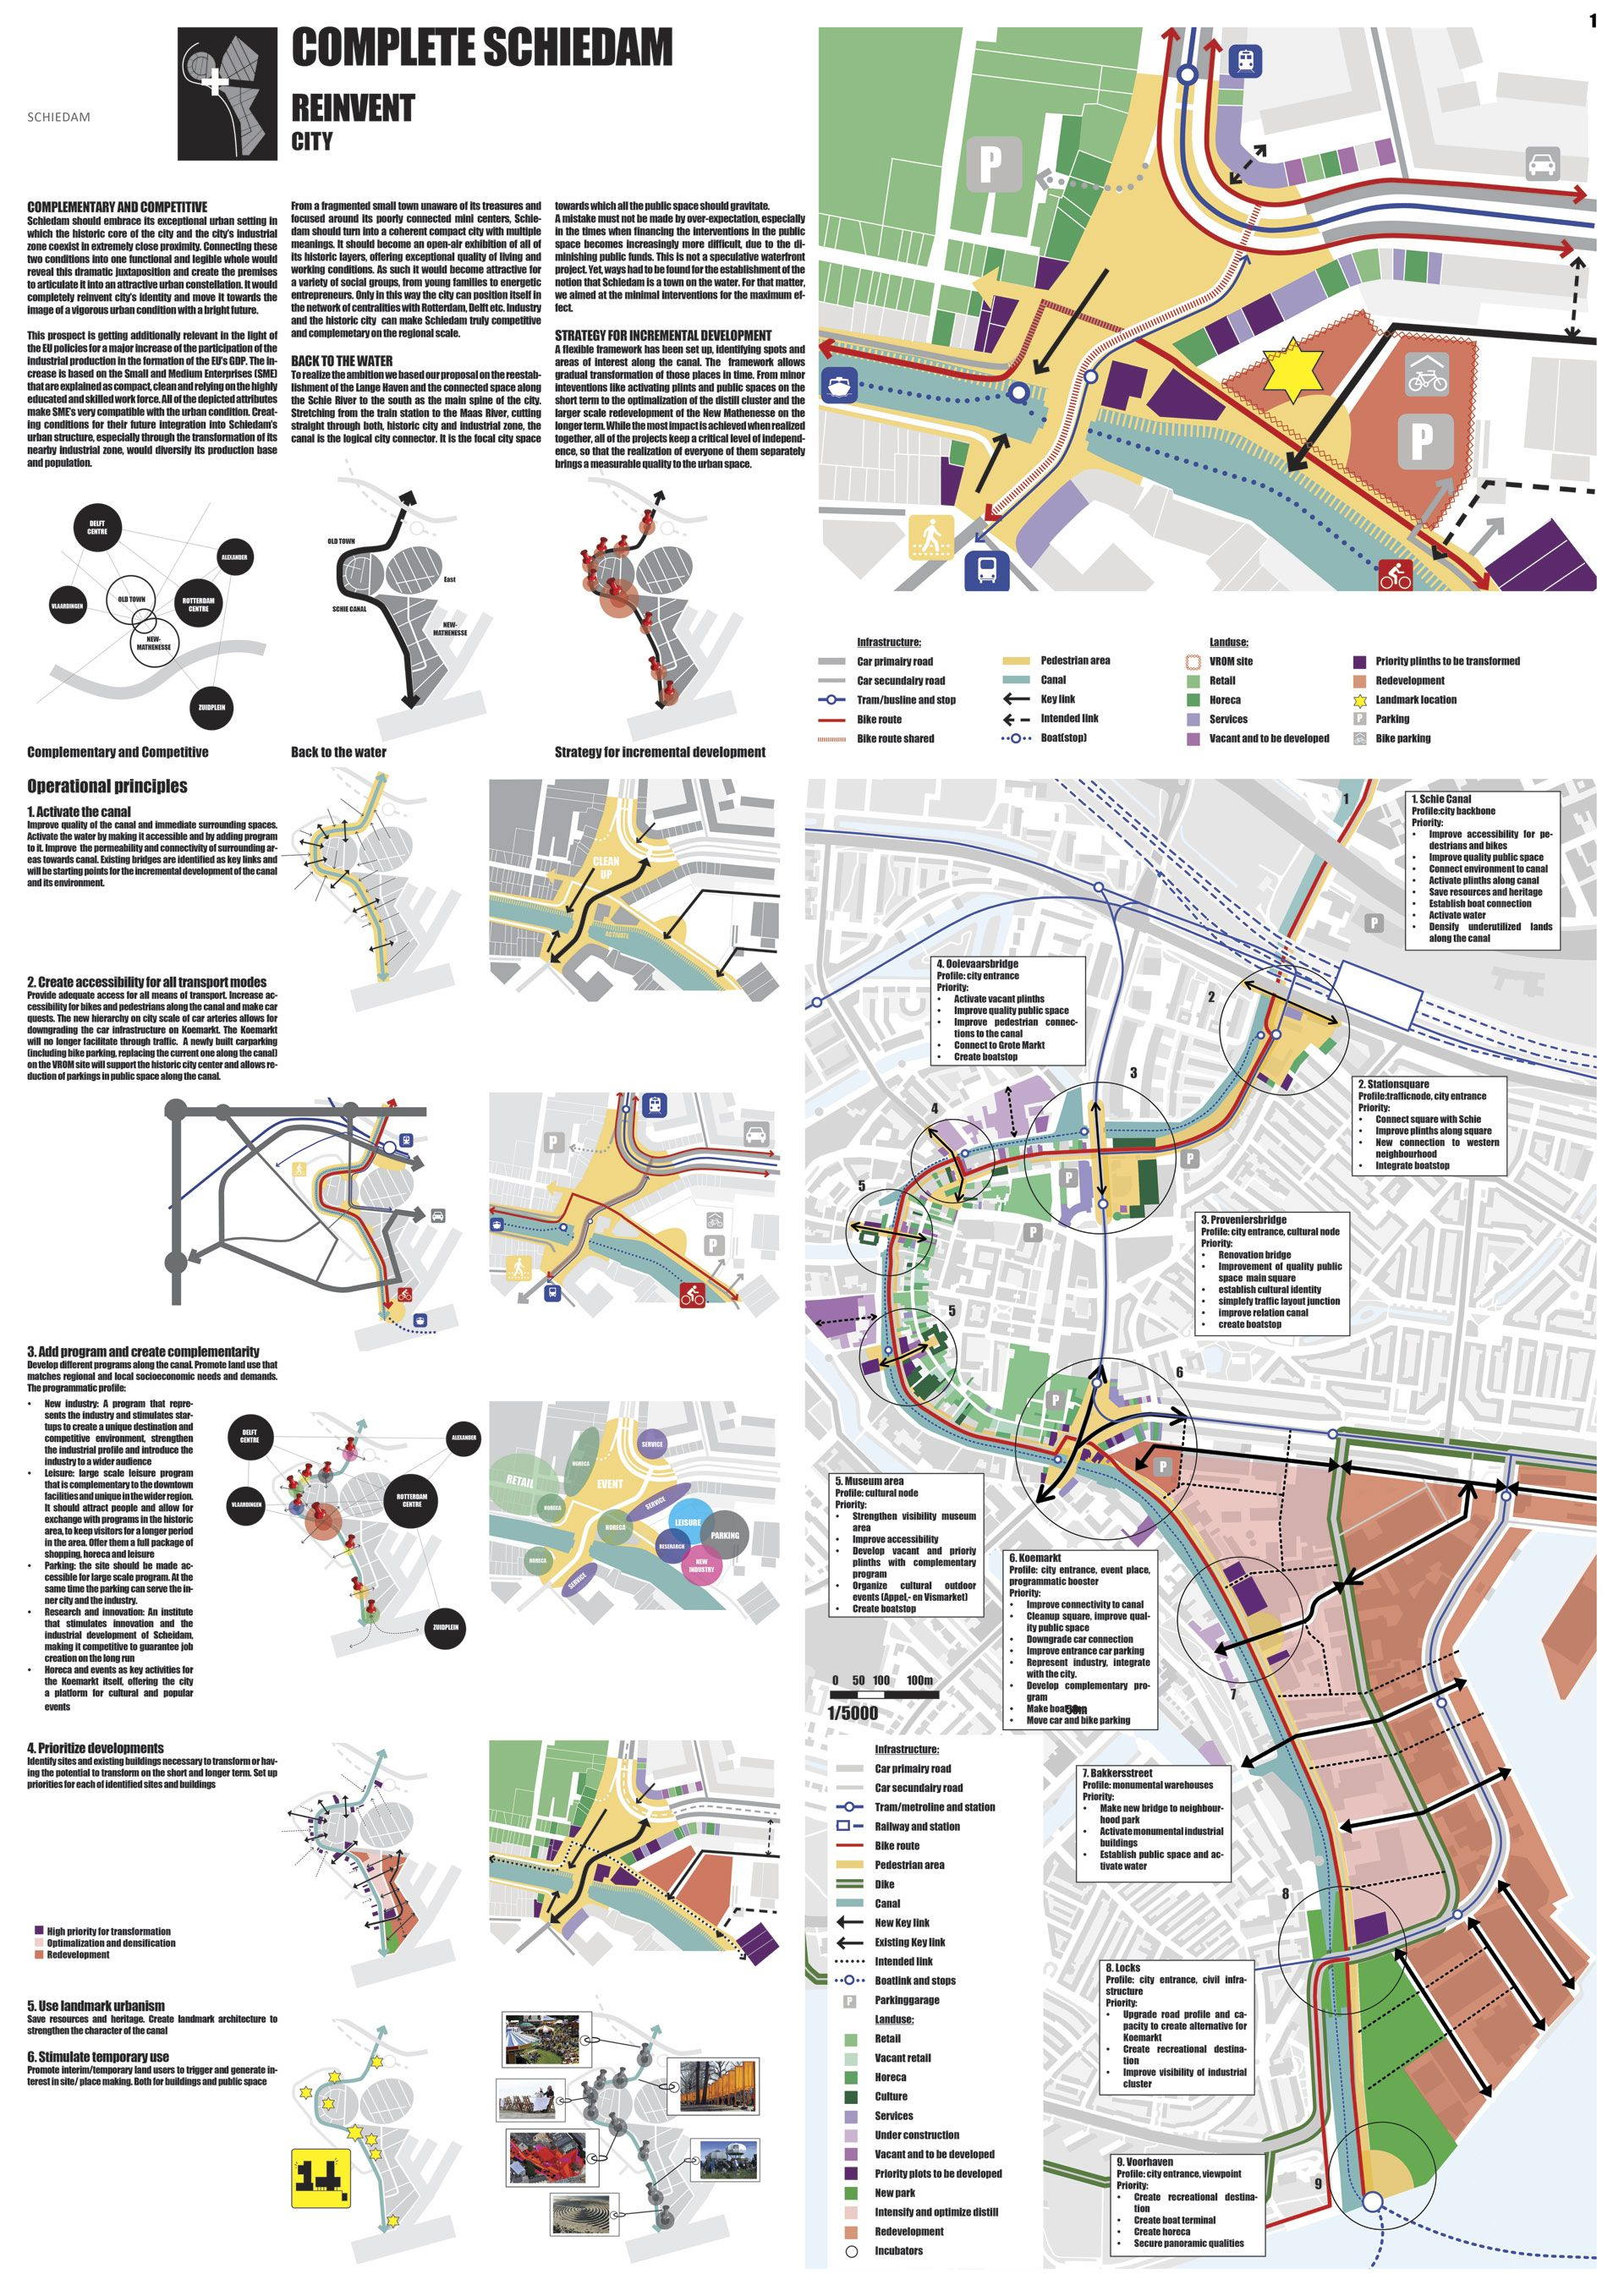 architecture site analysis diagram bmw e46 boot wiring results of the europan 12 competition